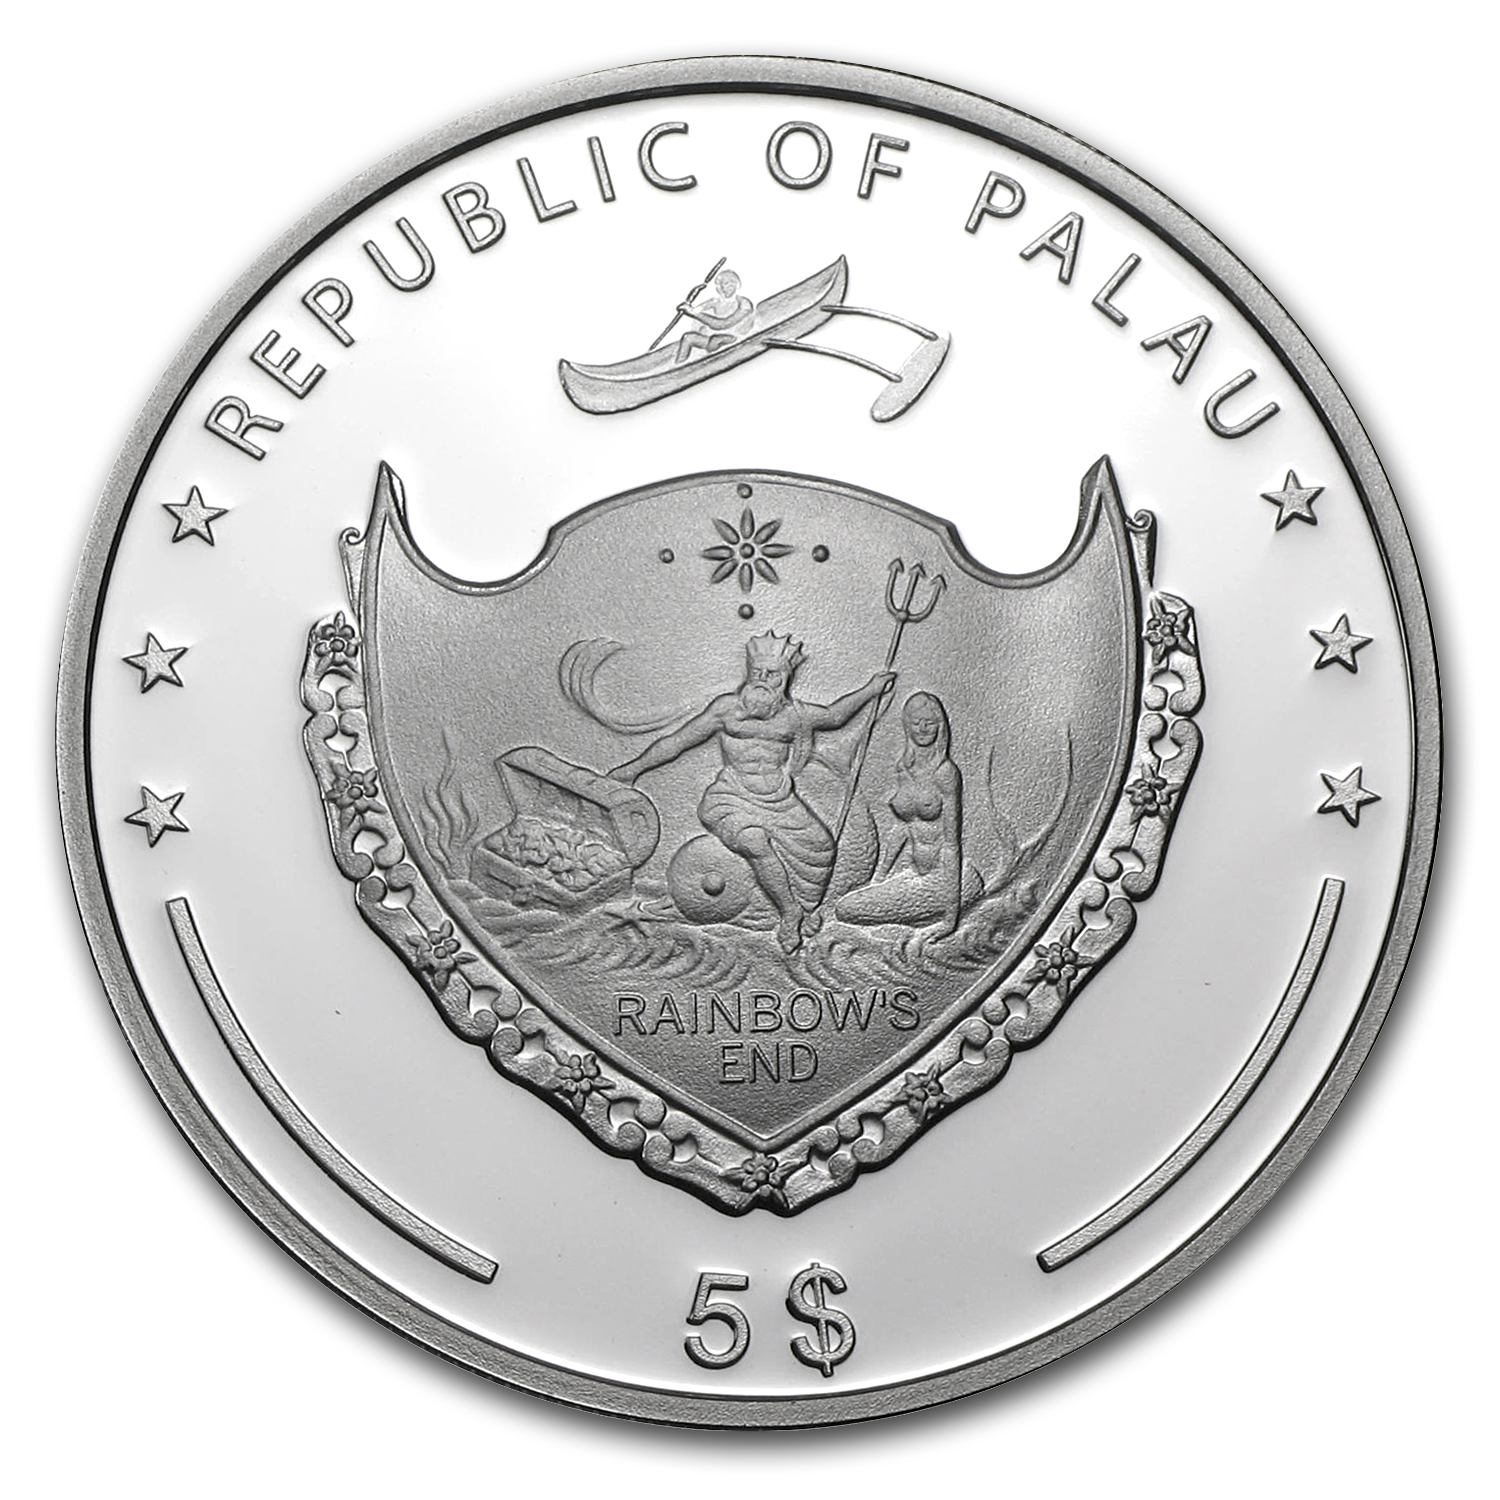 Palau 2011 Silver Proof $5 World of Wonders-Leaning Tower of Pisa